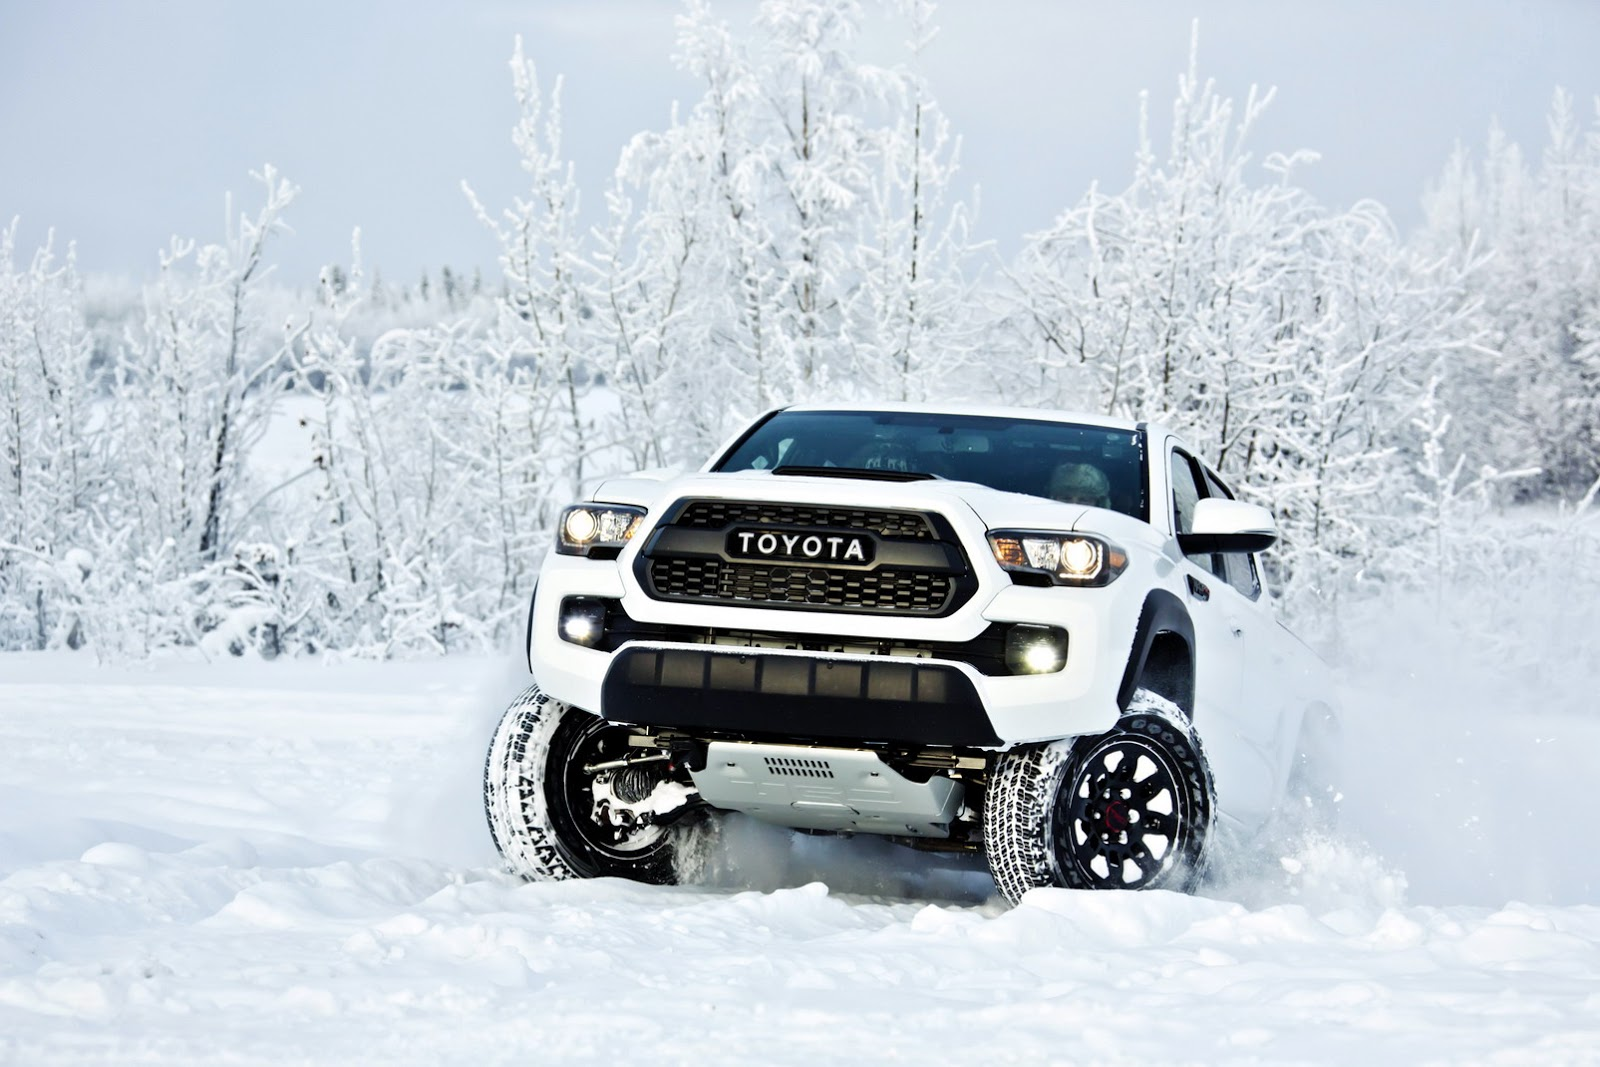 2017 Toyota Tacoma Trd Pro Is Like A Japanese Raptor Without The Power Carscoops Com